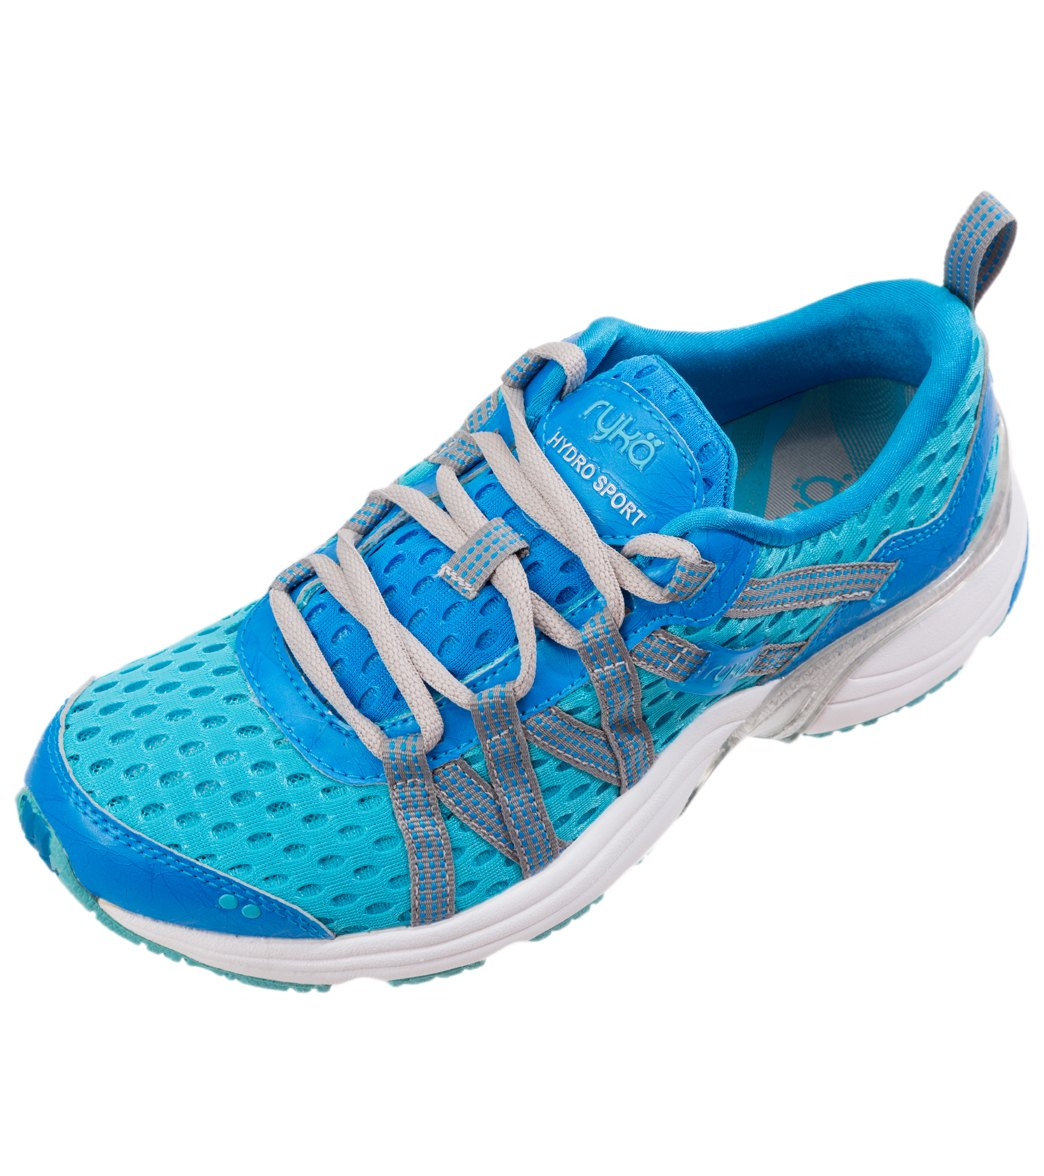 e3db1c9931a8 Ryka Women's Hydro Sport Water Shoes at SwimOutlet.com - Free Shipping